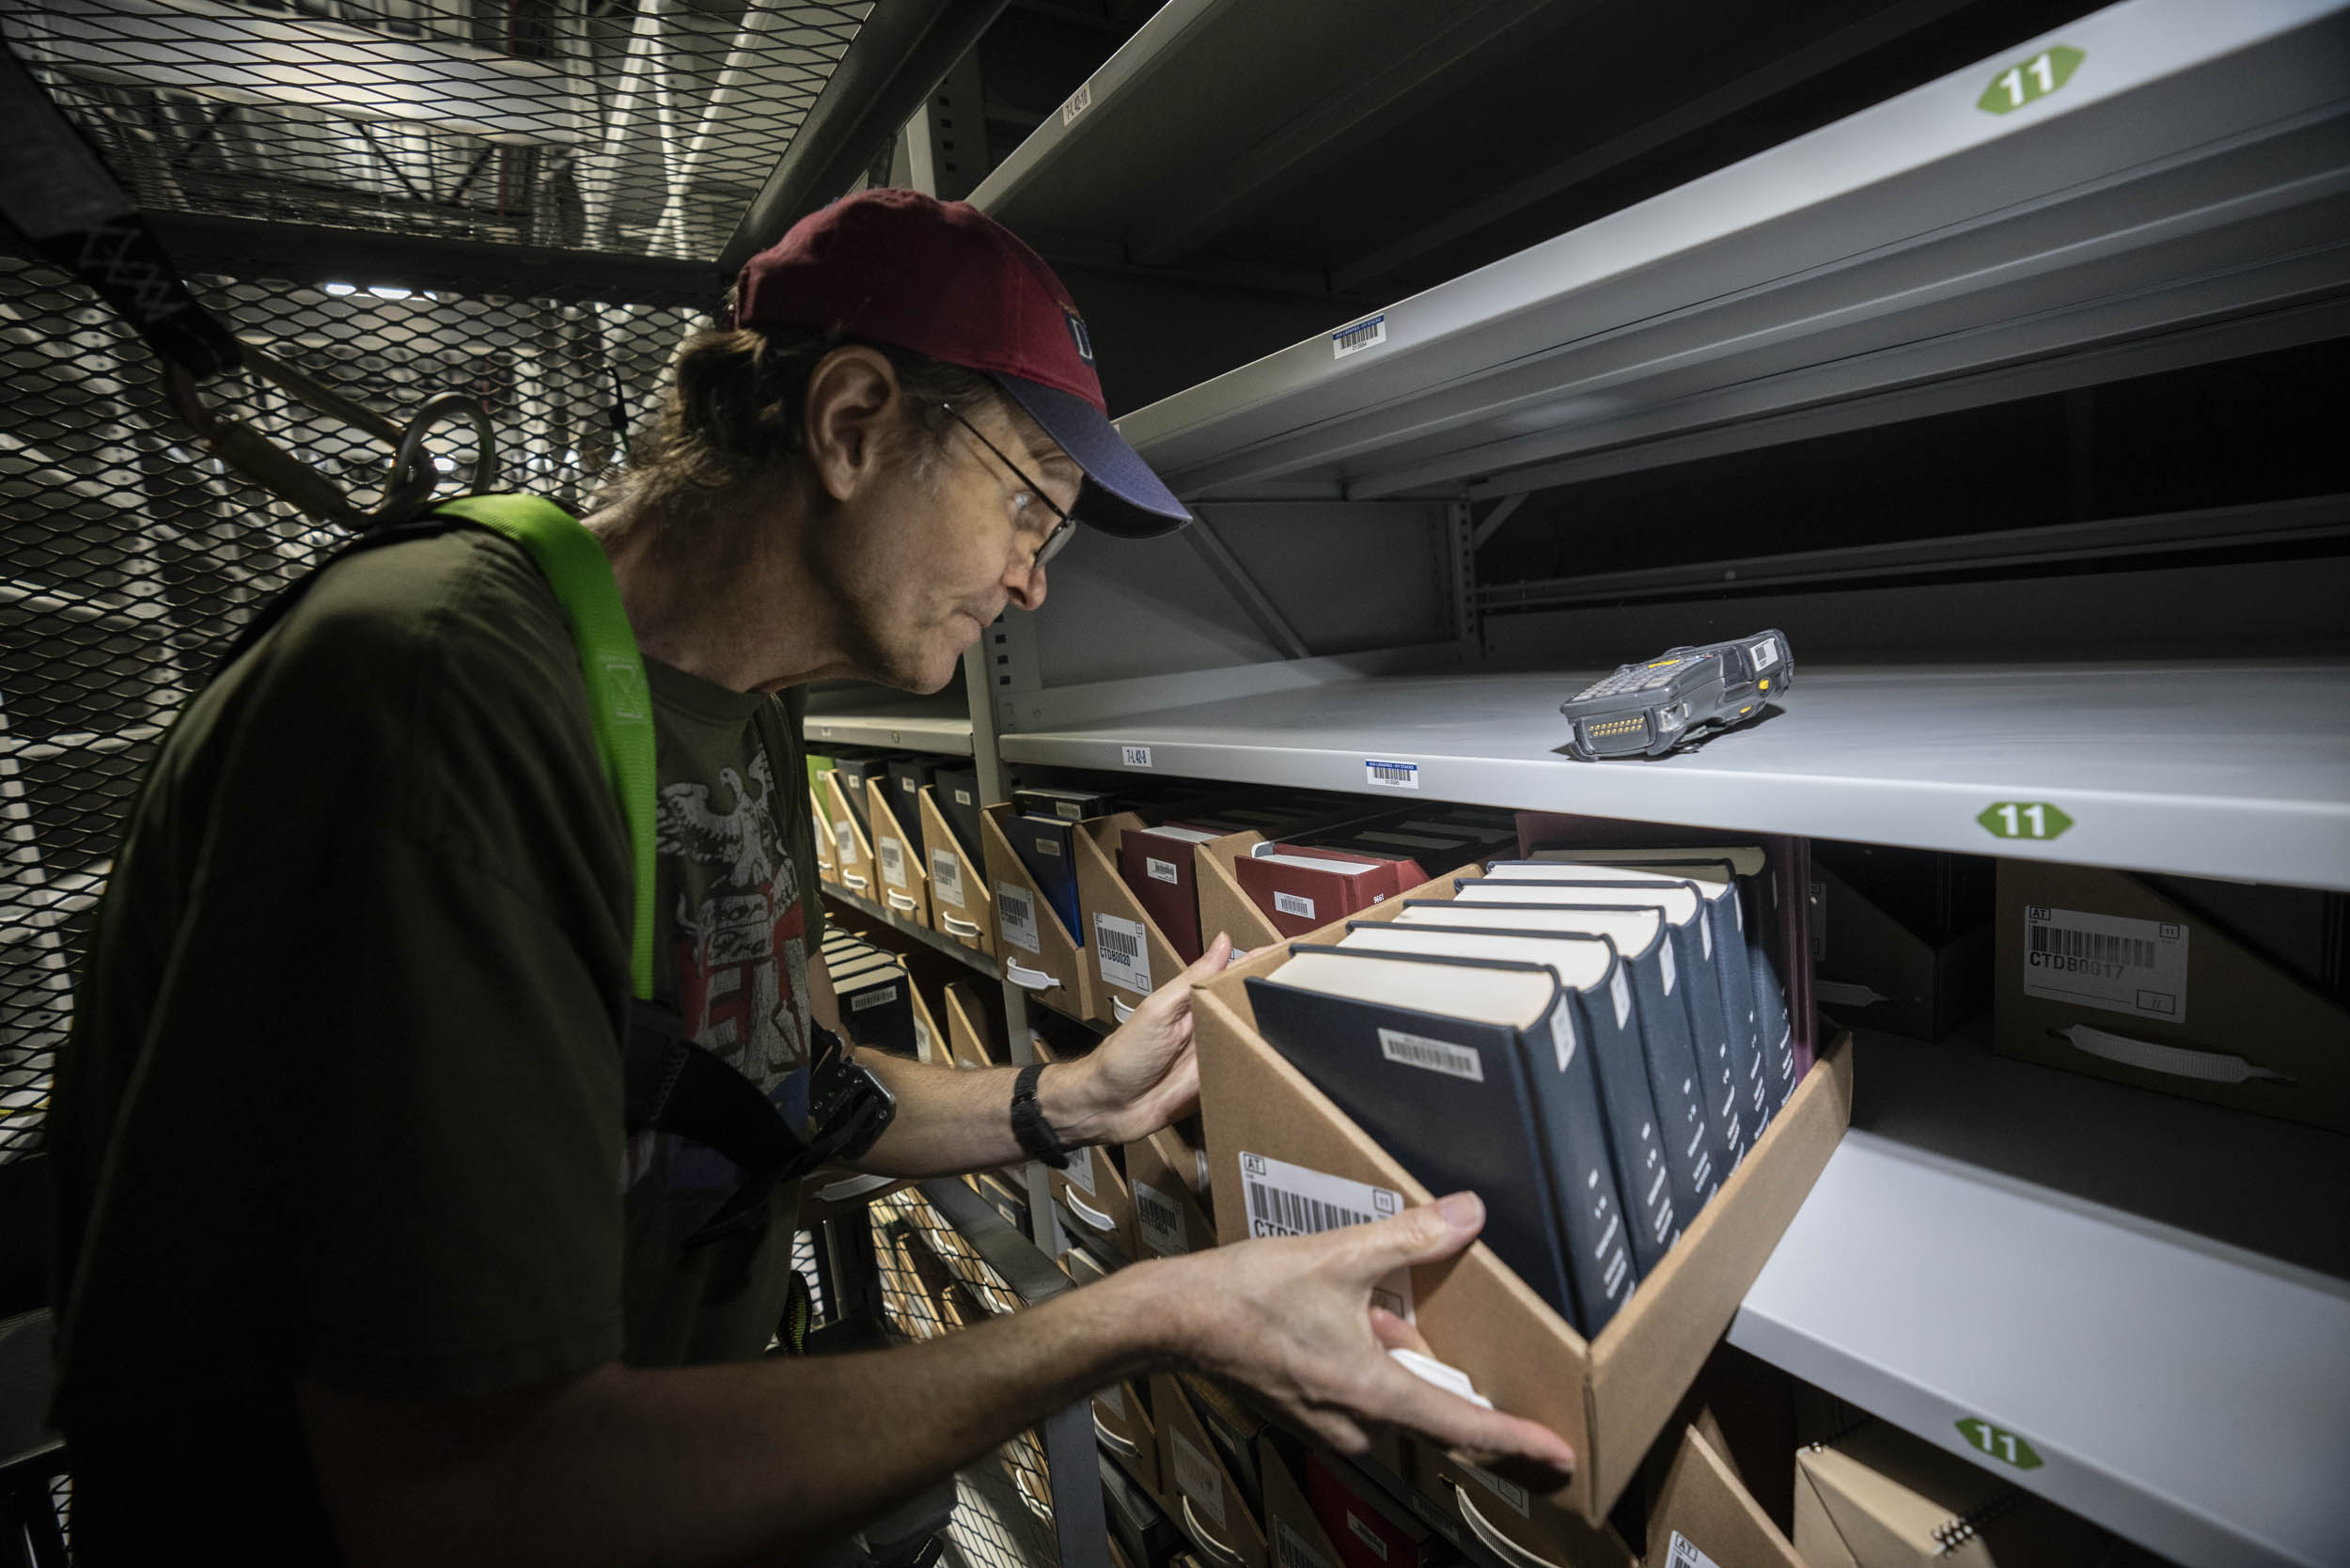 Steve Bartlett, the stacks manager, moves trays of books.